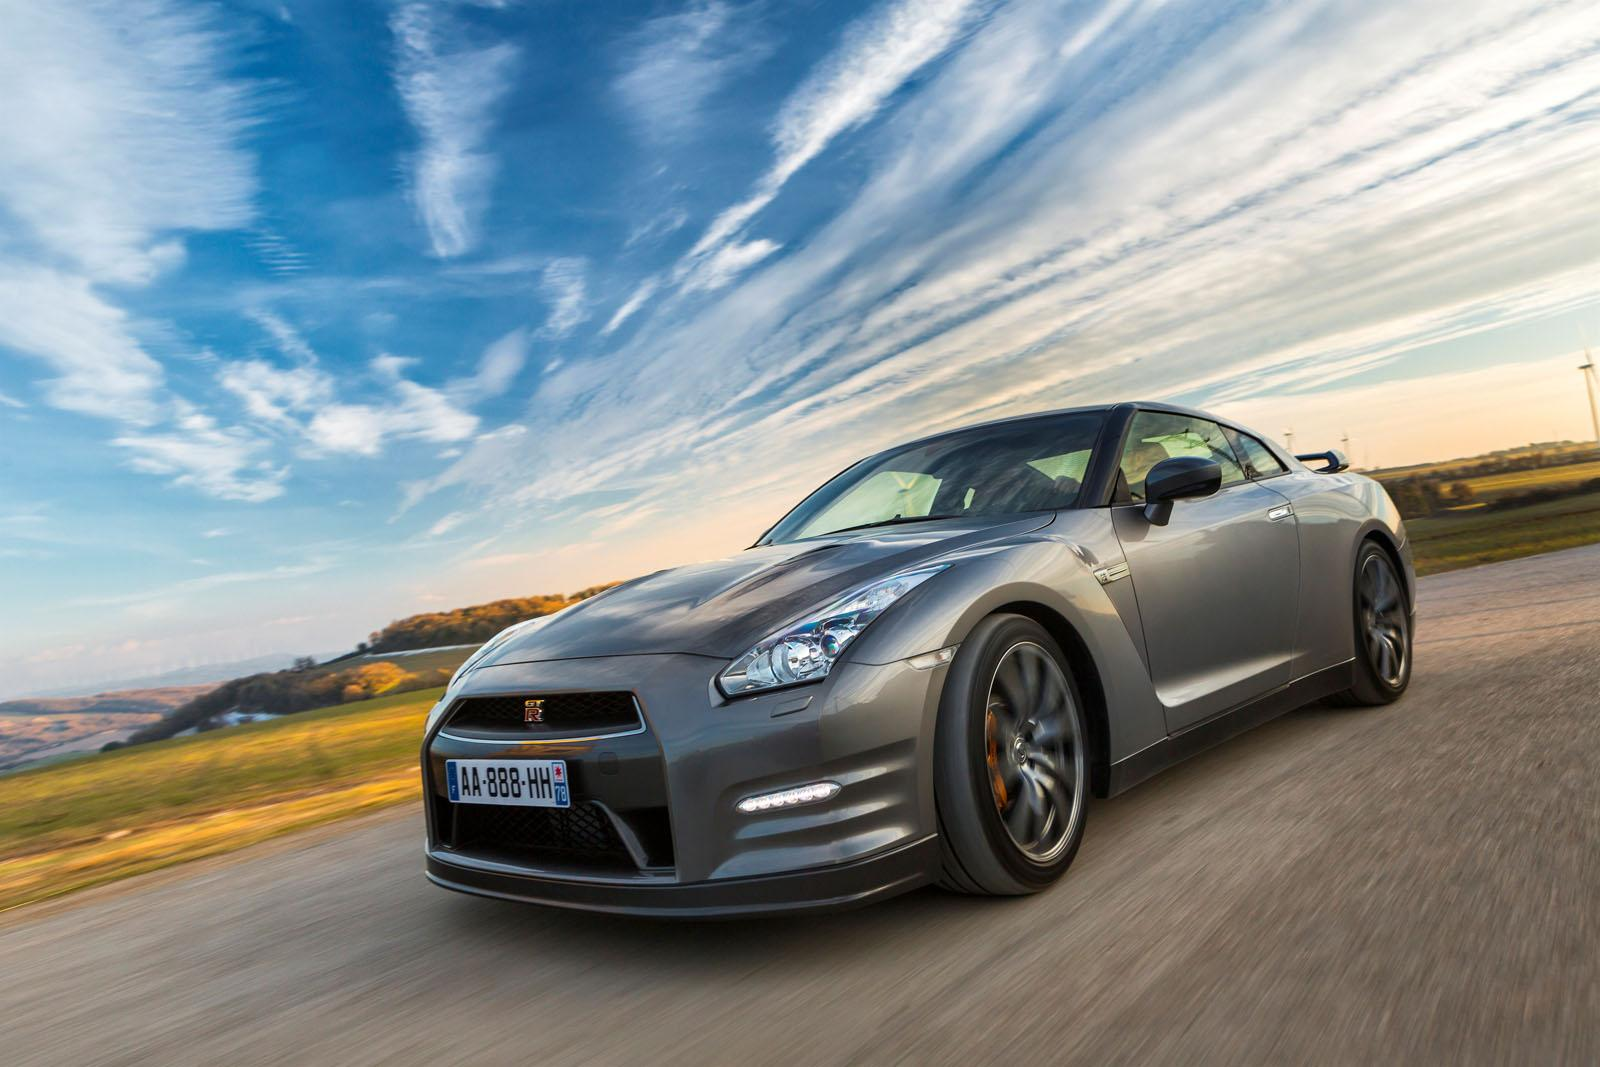 Nissan nissan gtr 2014 : 2014 Nissan GT-R Special Edition Review - Top Speed